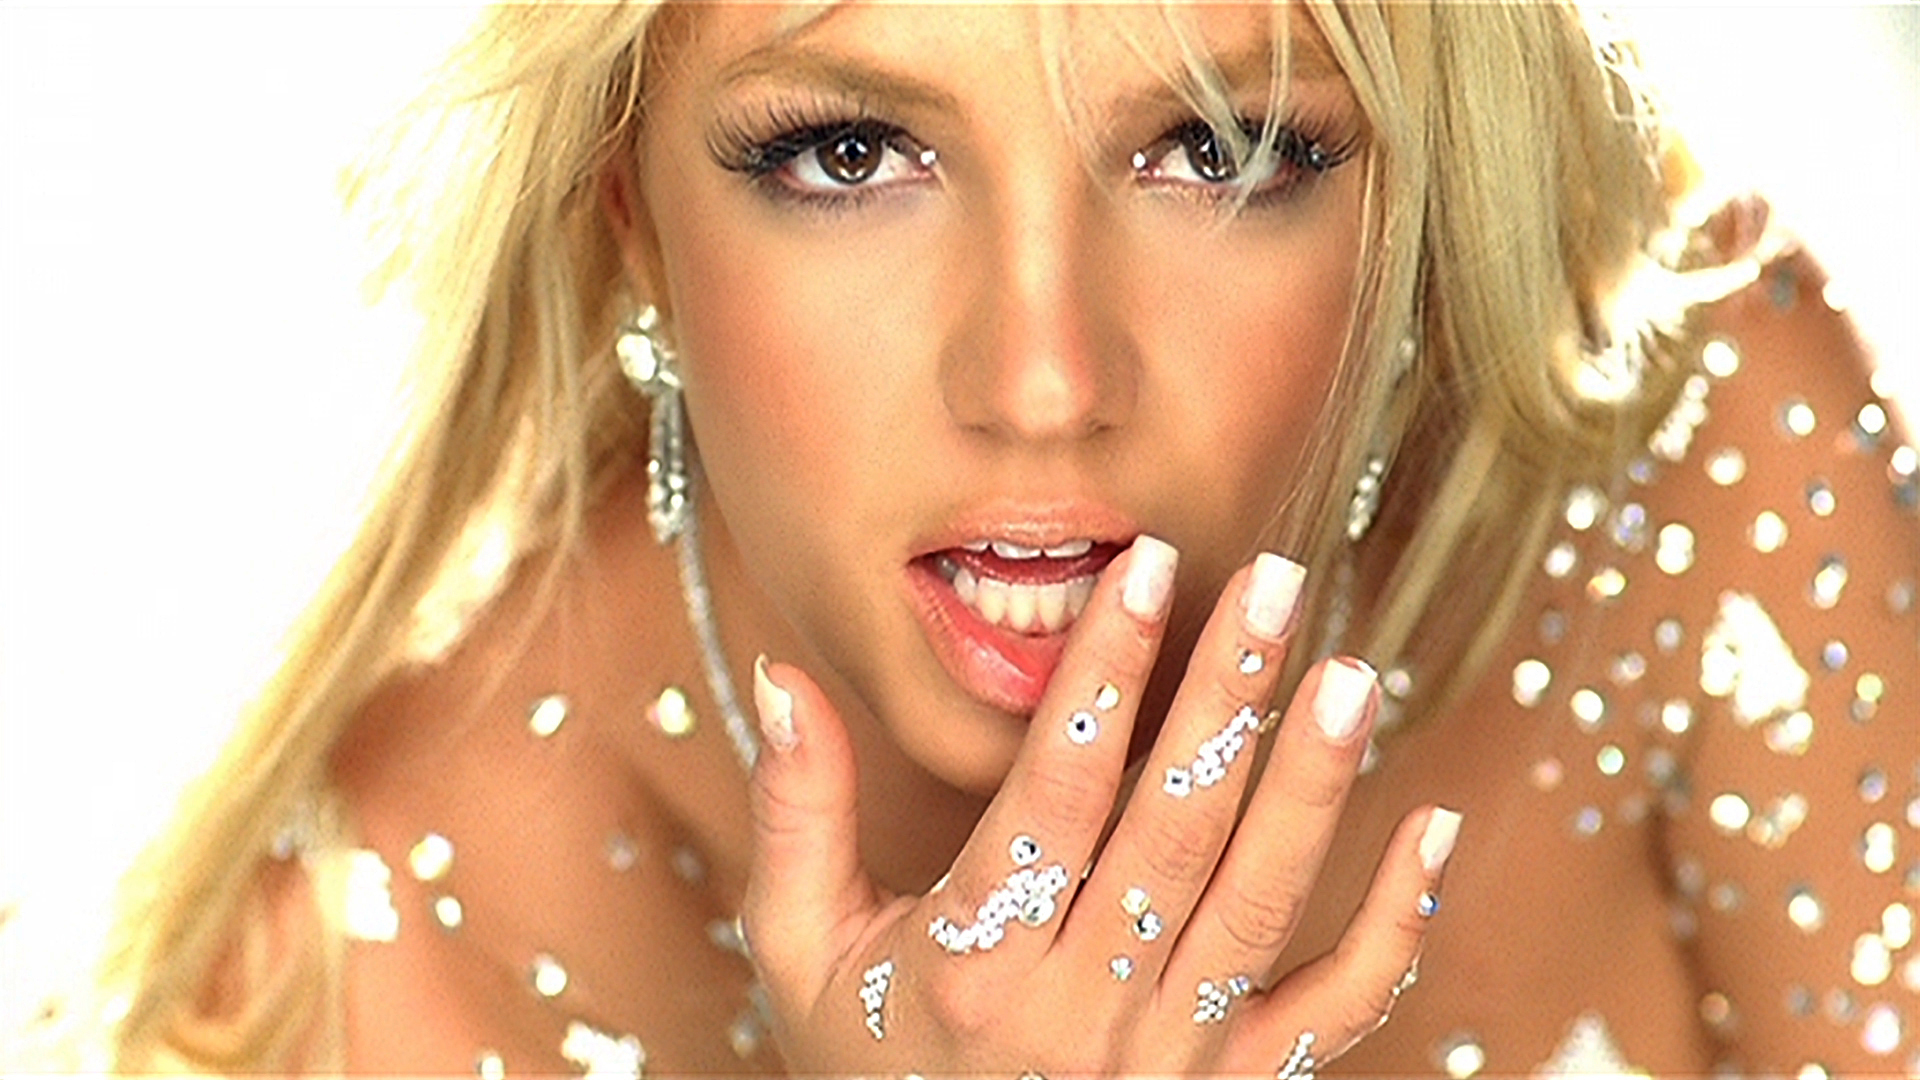 Watch Britney Spears's 9 Best Music Videos of All Time to Celebrate Her Latest Album, <em>Glory</em>